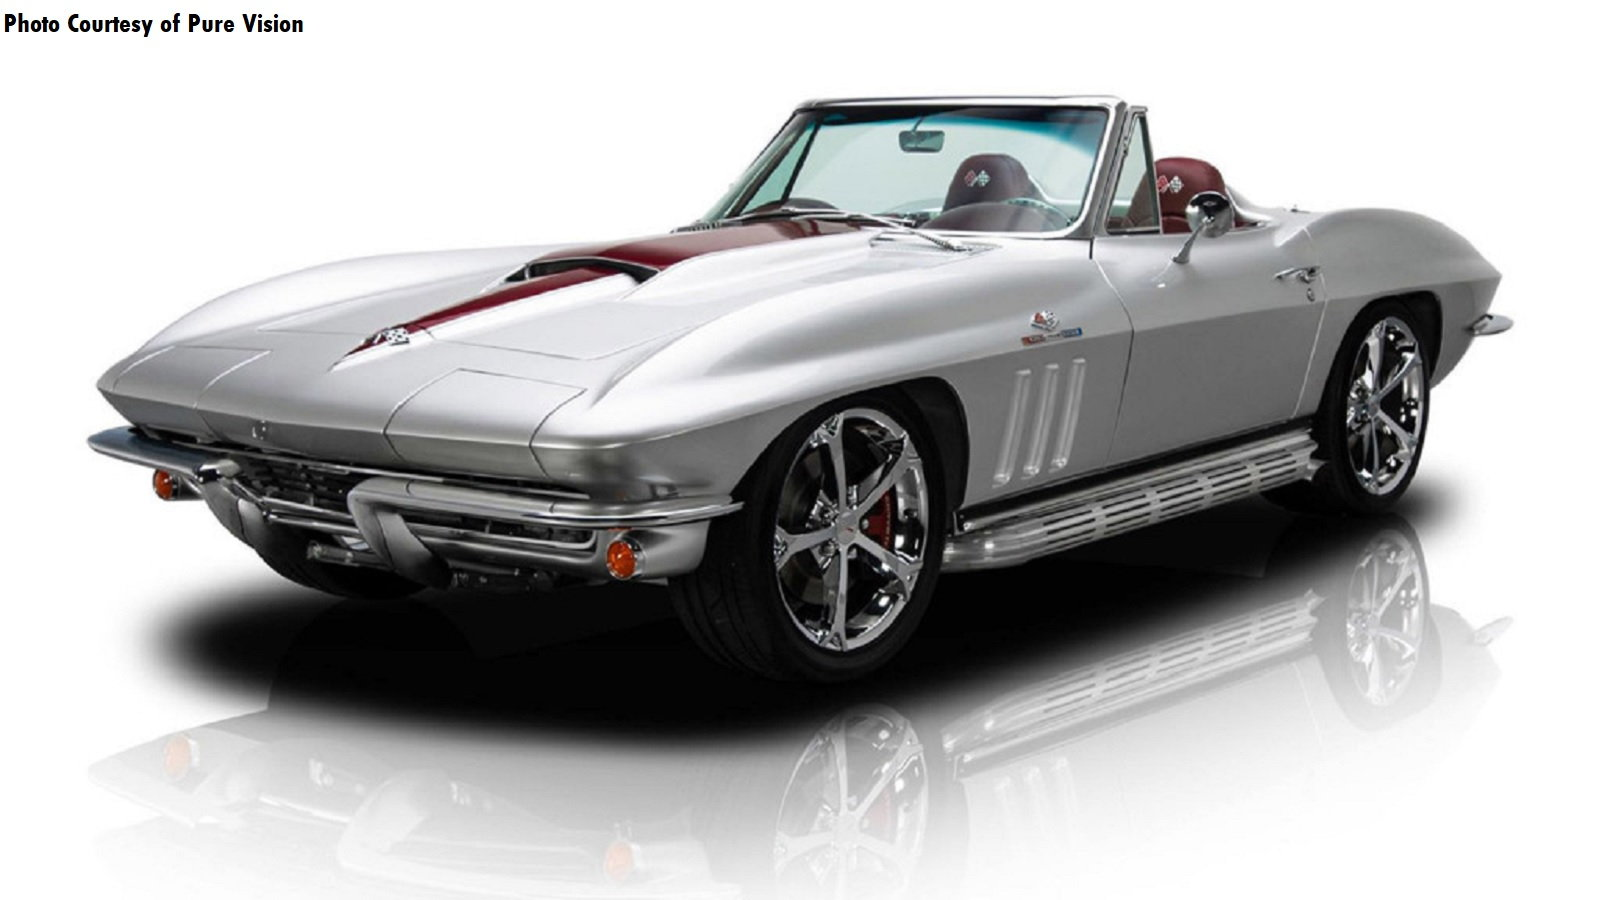 Joe Rogan's C2 Corvette Stingray Restomod